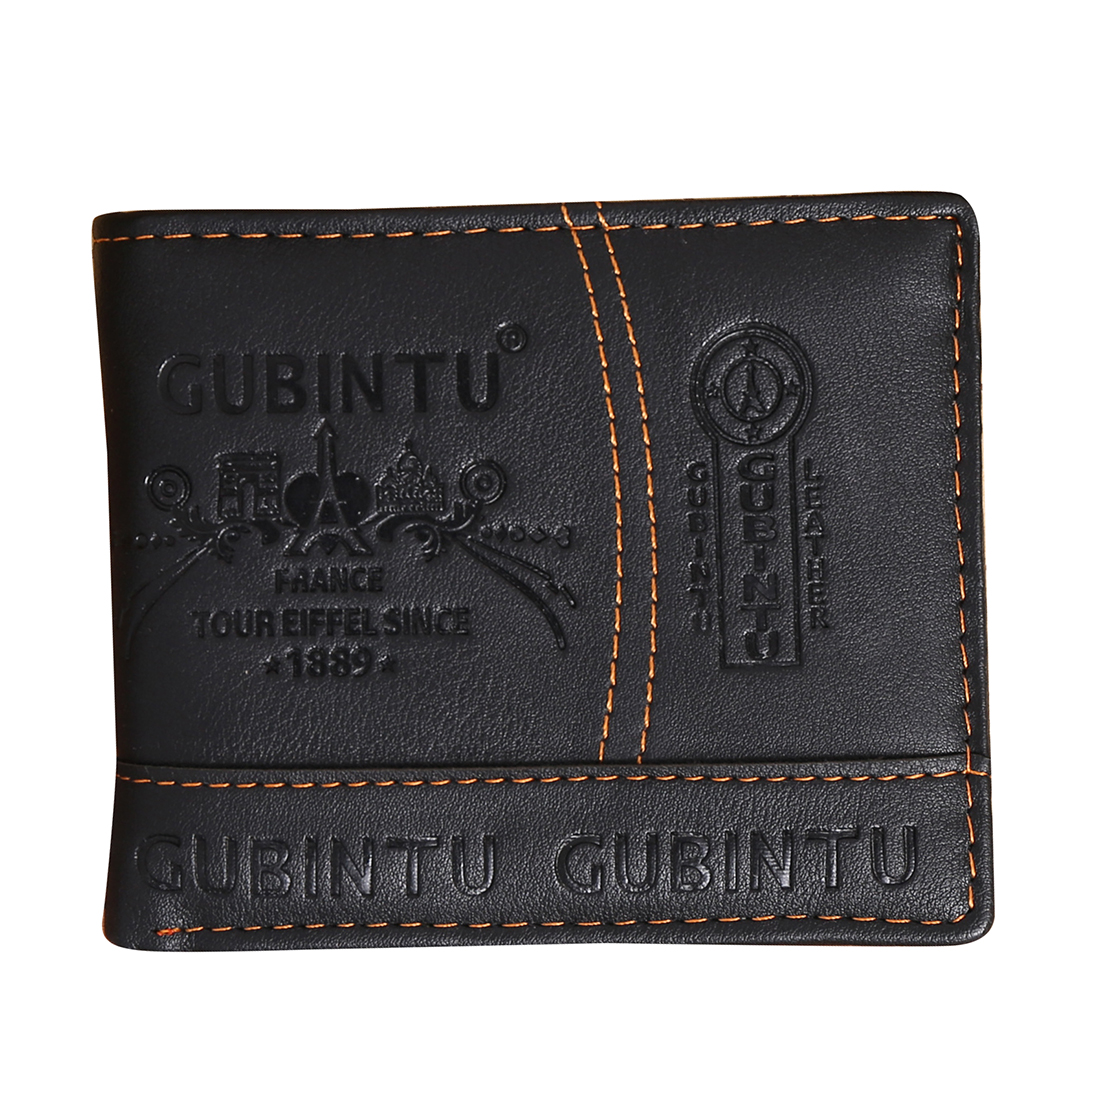 5) Slim Leather Mens Wallet Man Cowhide Cover Coin Purse Small Brand Male Credit&id Multifunctional Walets